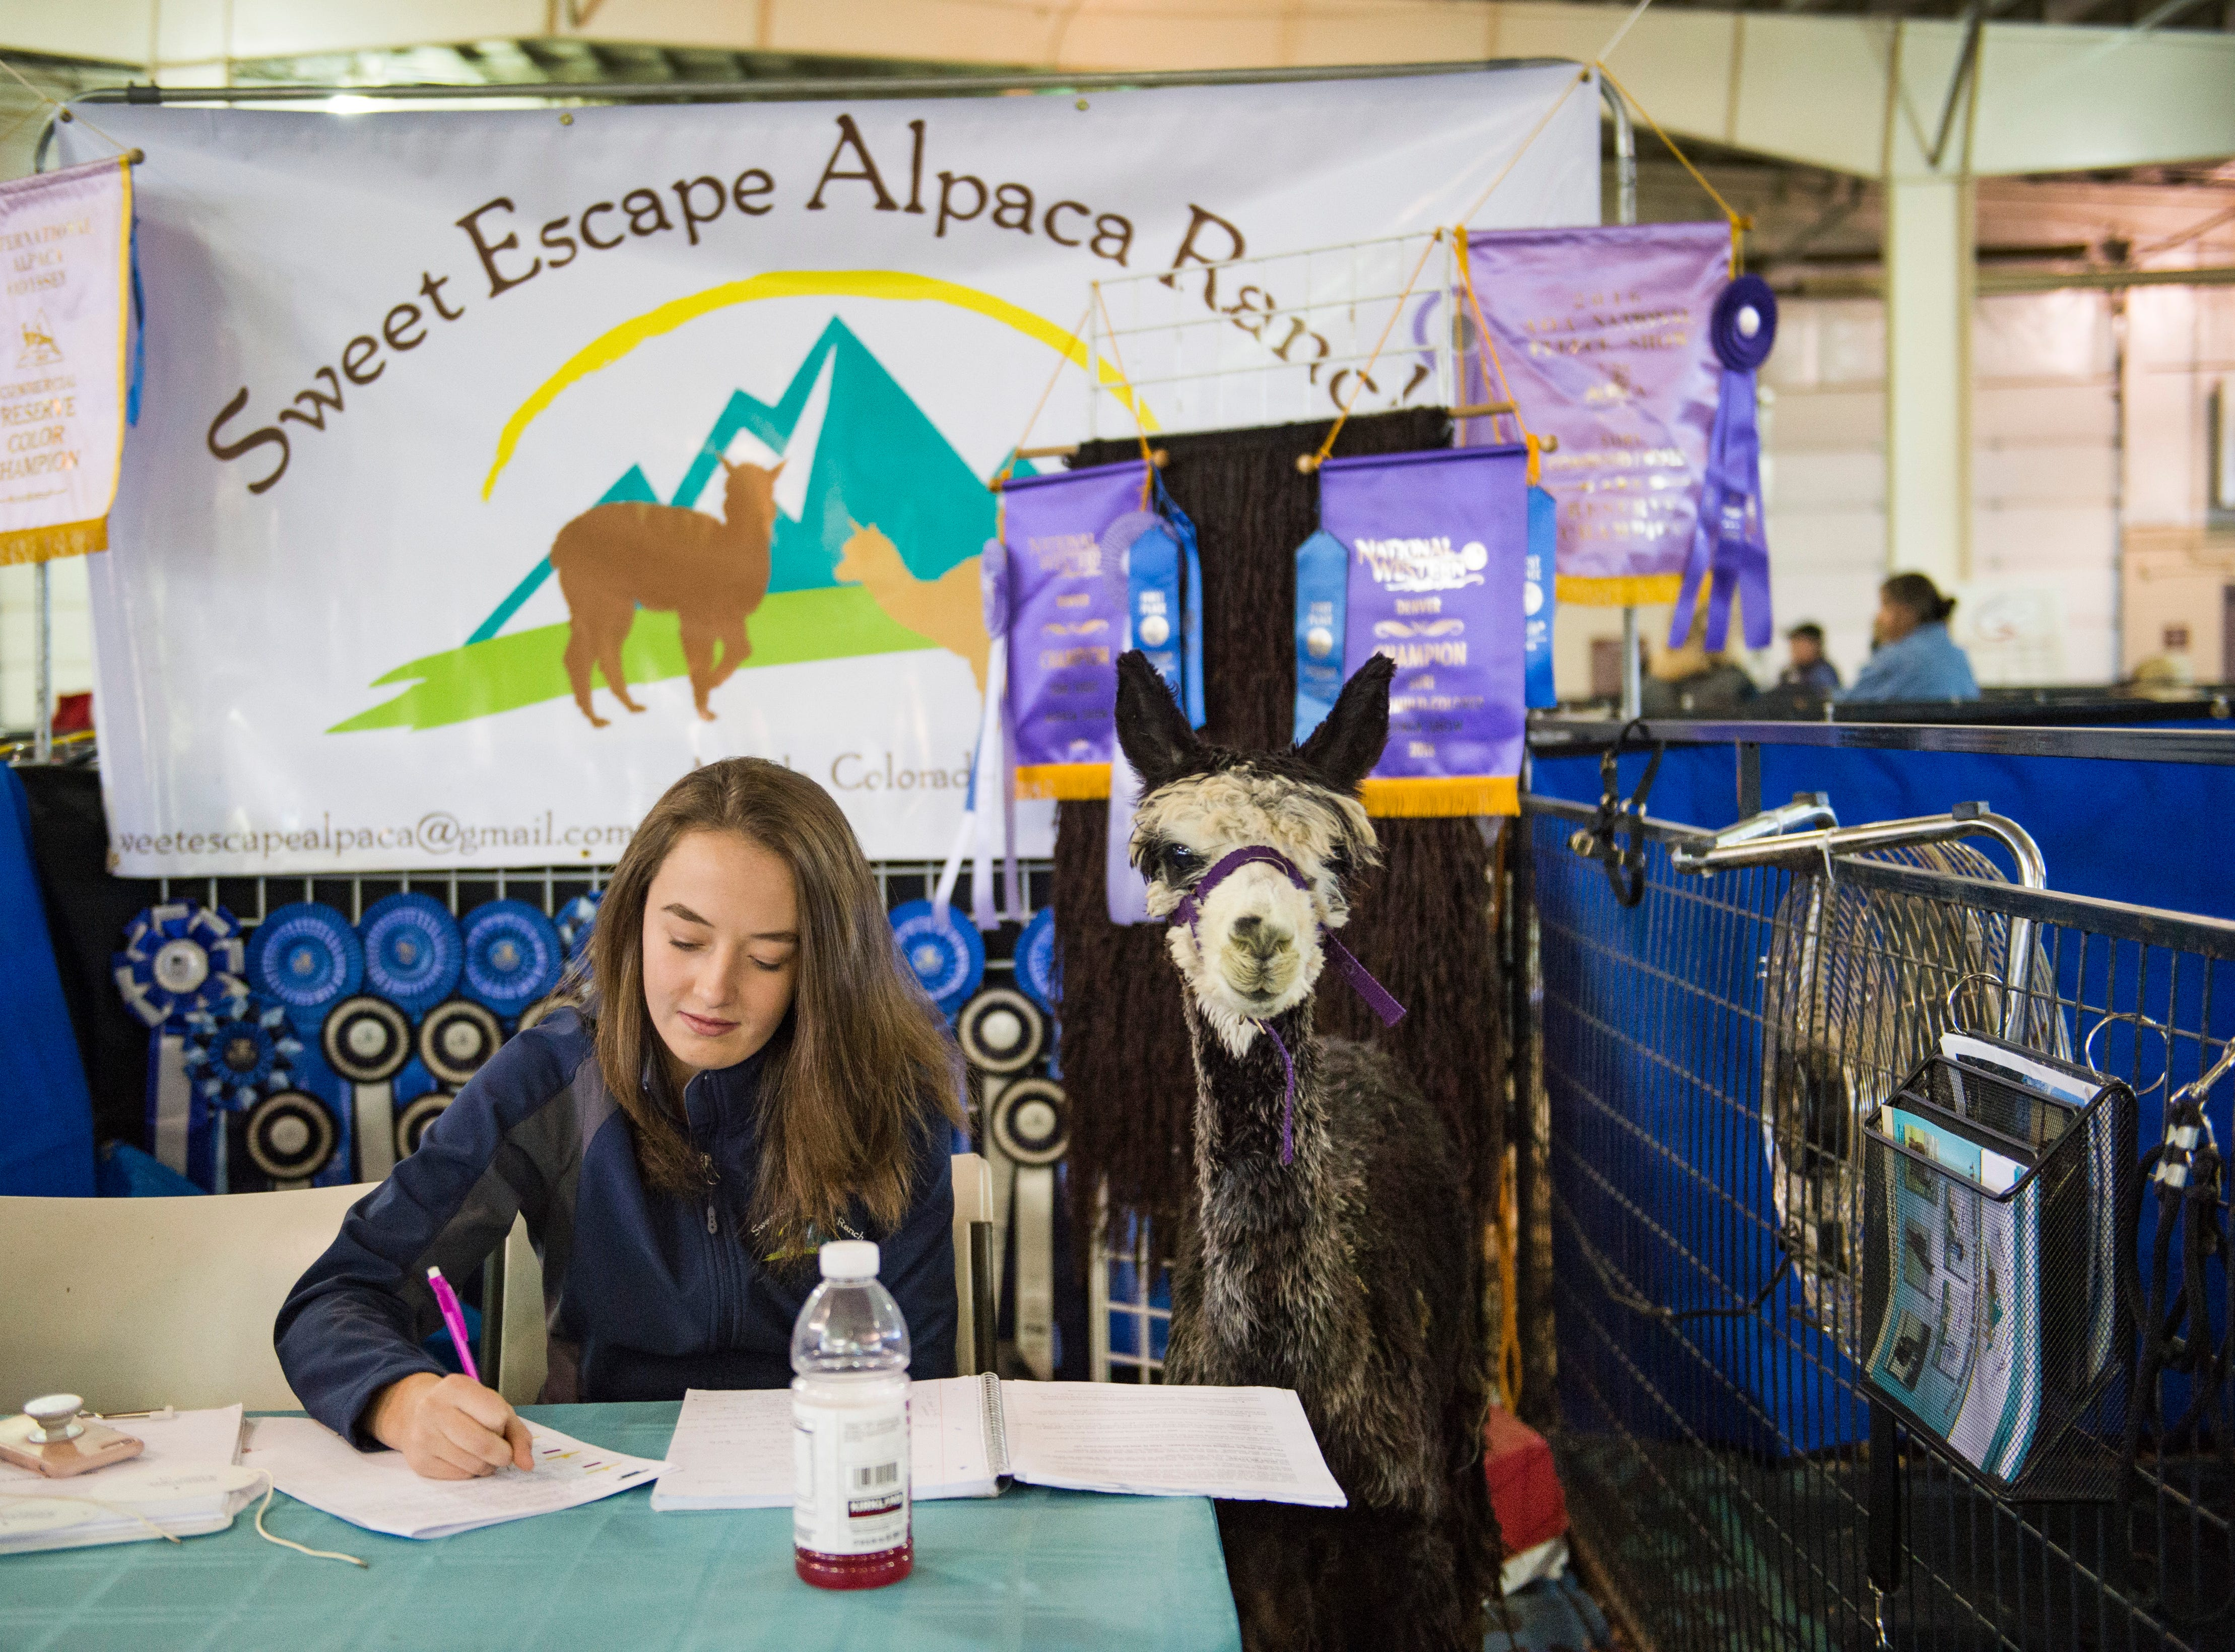 Mystic the alpaca sits patiently while Sydney May works on some school work during the Fall Festival Alpaca Show at The Ranch in Loveland on Saturday, November 2, 2018. Alpaca breeders and handlers gathered to swap tips of the trade and show their animals.